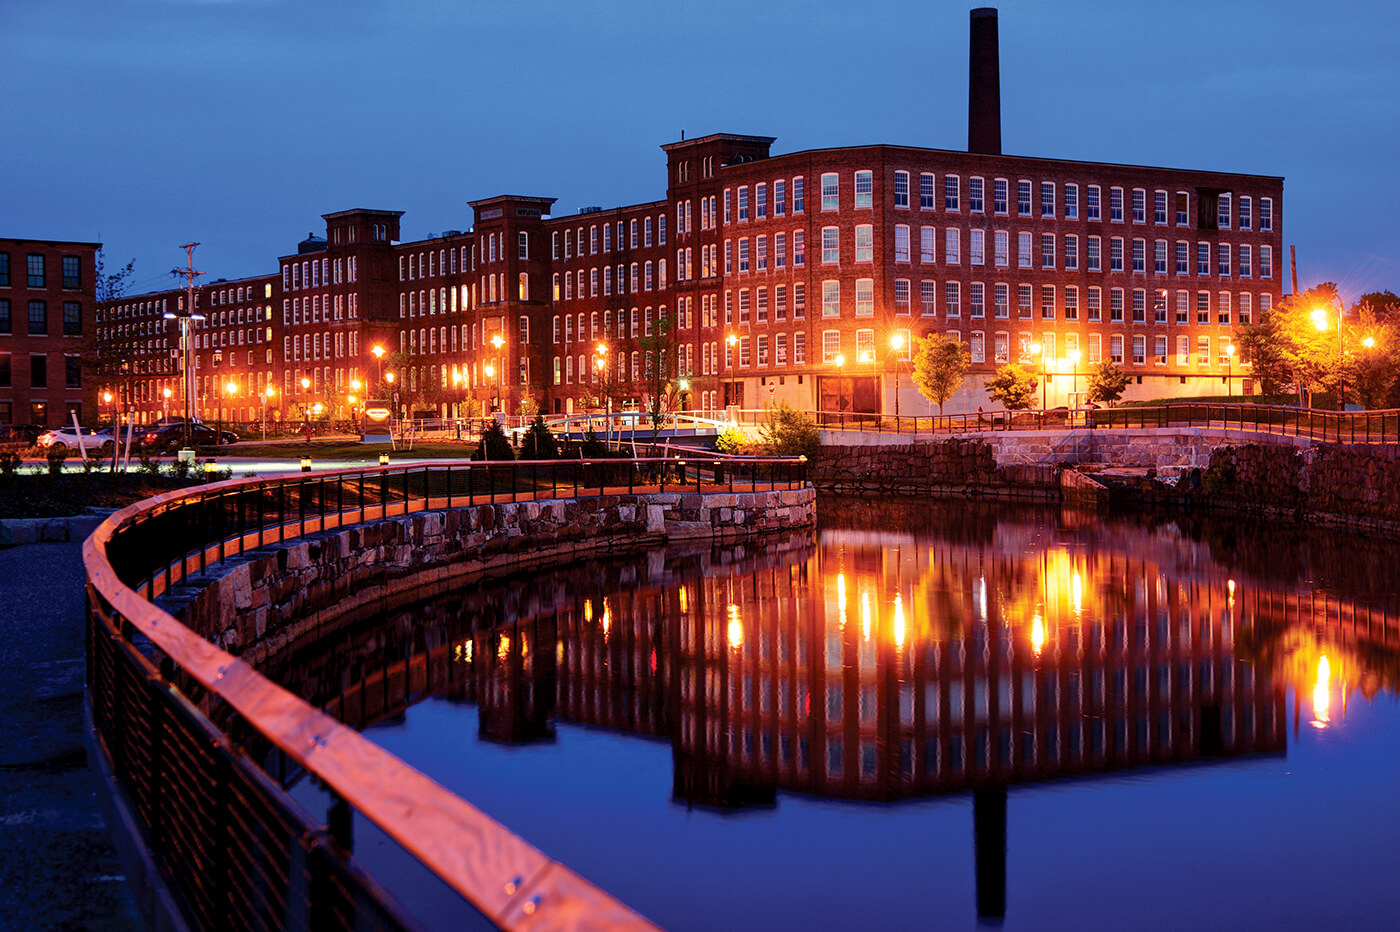 lowell mill buildings at night